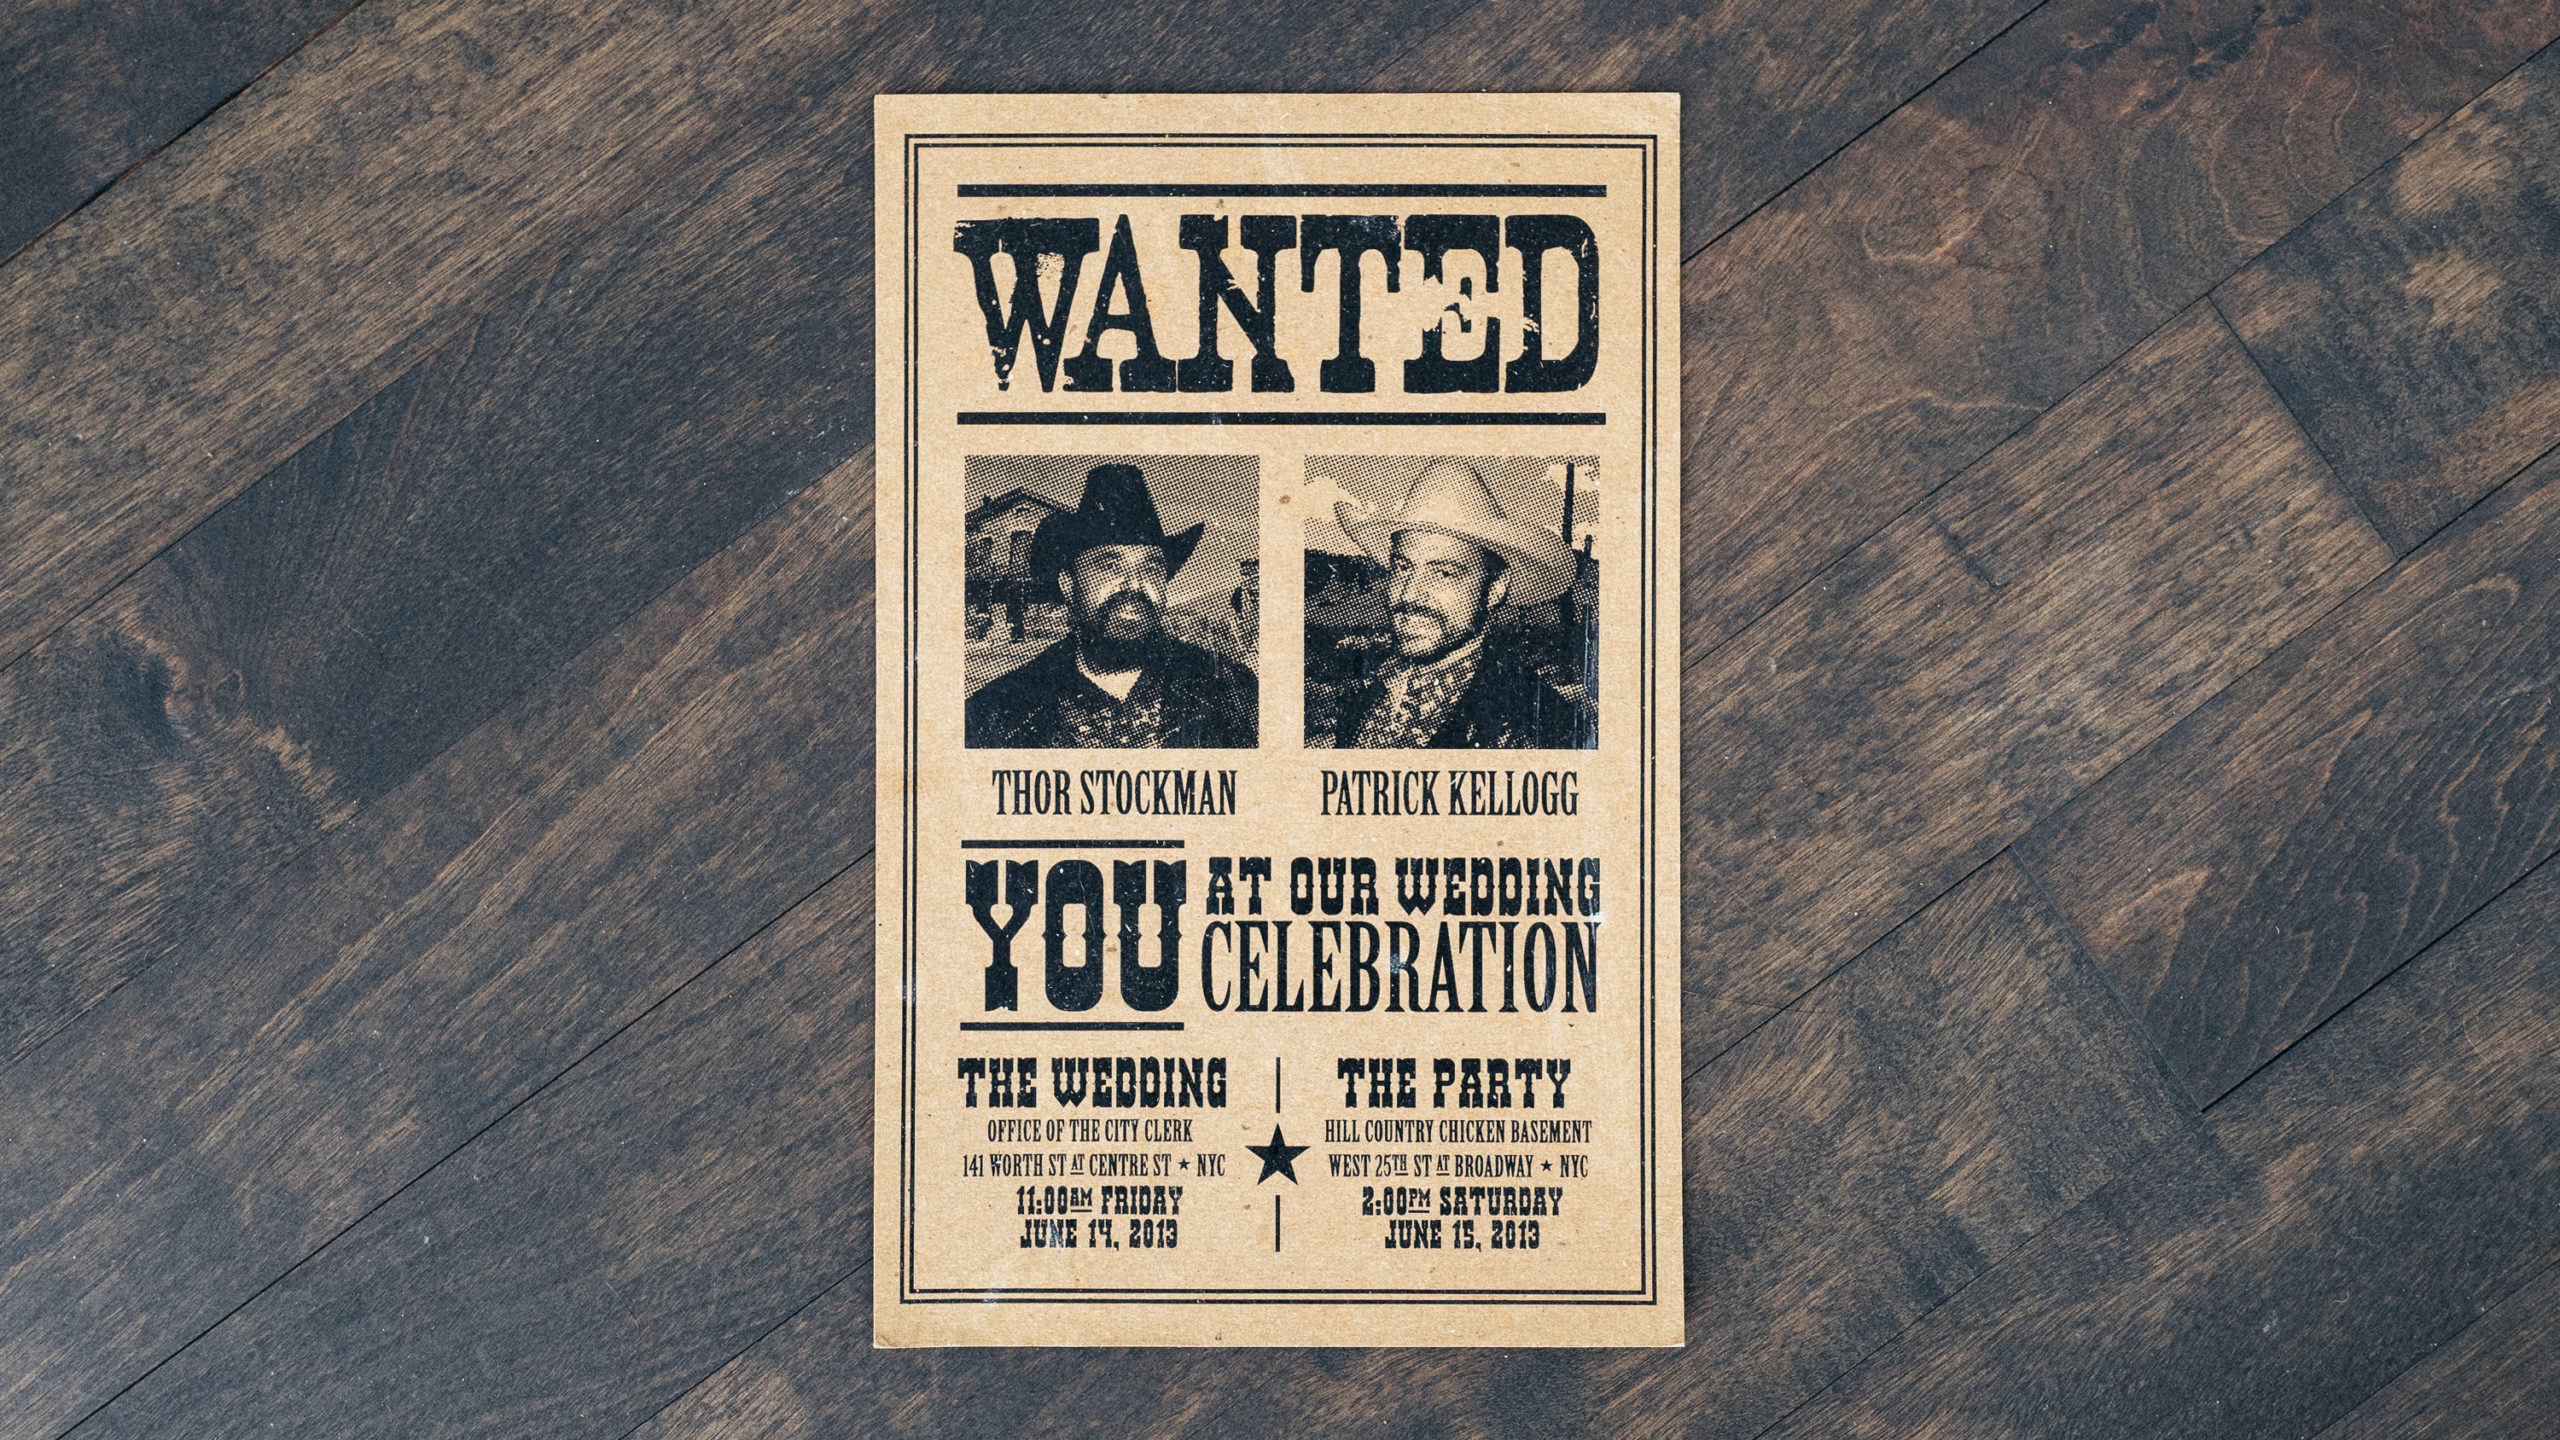 A wedding invitation done in the style of a western wanted flyer